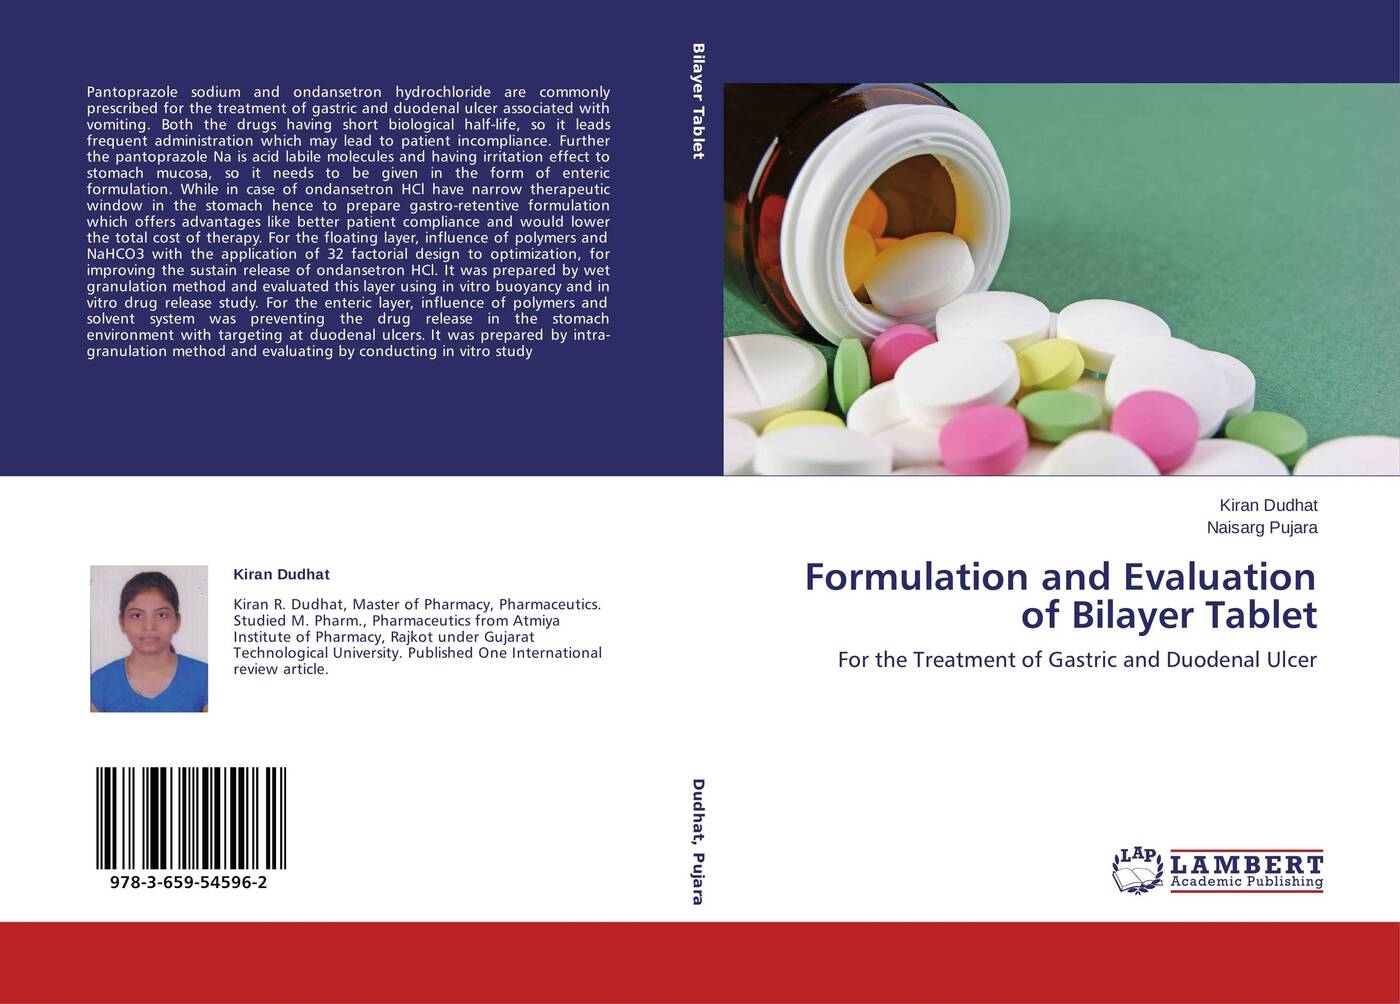 Kiran Dudhat and Naisarg Pujara Formulation and Evaluation of Bilayer Tablet berkeley moynihan the surgical treatment of gastric and duodenal ulcers